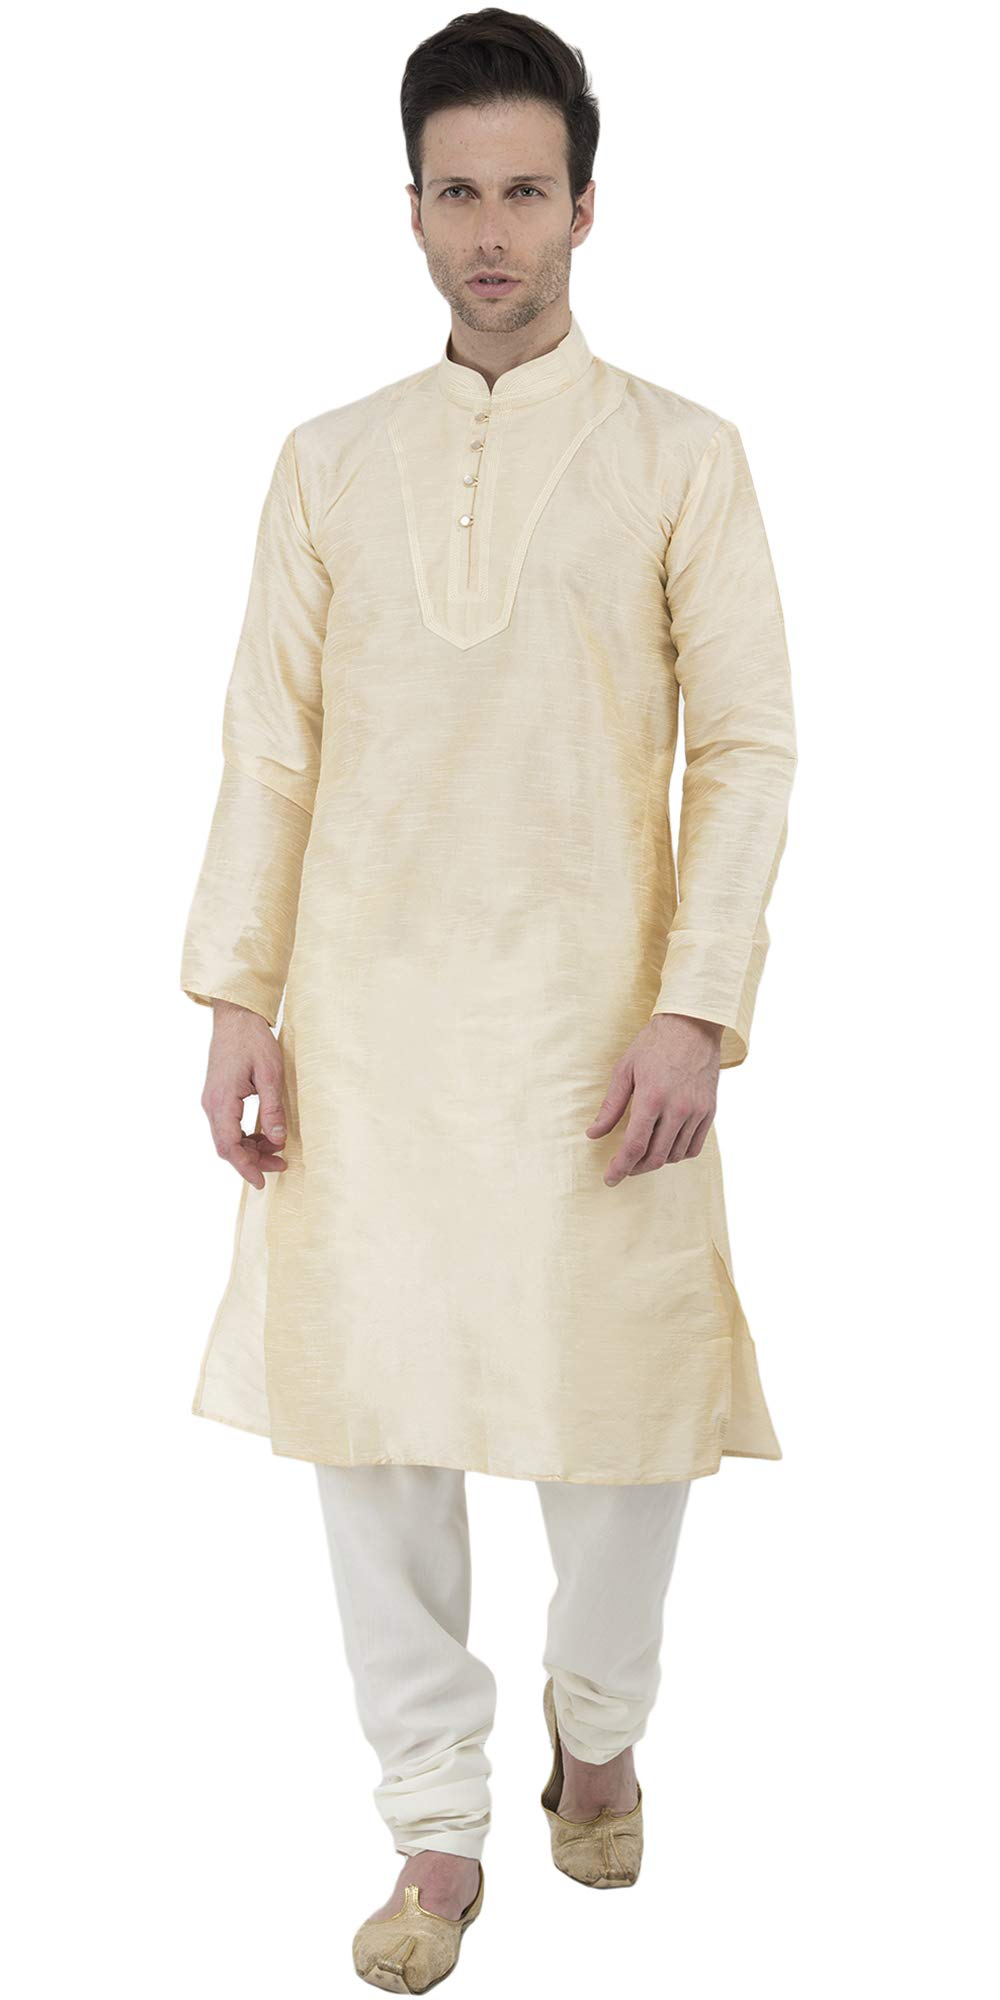 Gents Kurta Pajama Dress Wedding Indian Long Sleeve Button Down Shirt Dress -XL Beige